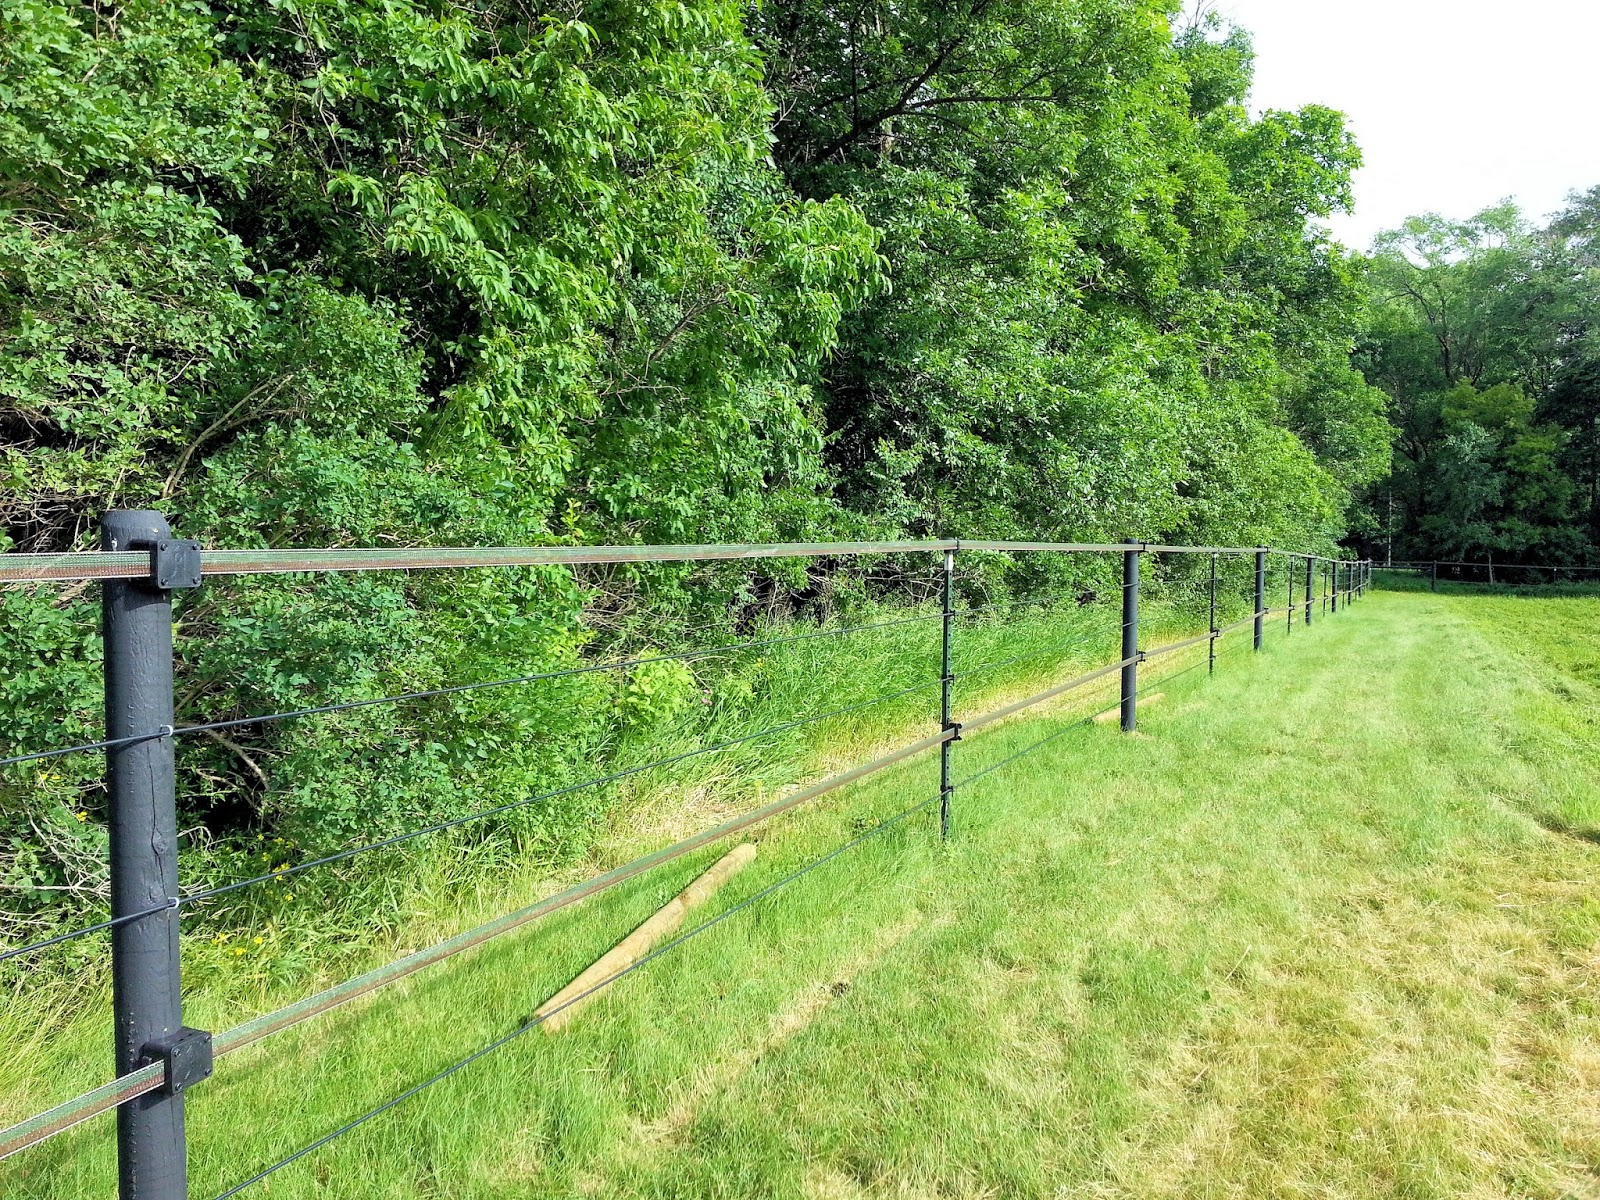 Kencove Coated Wire Fence: Part Two of What I Would Do Differently ...